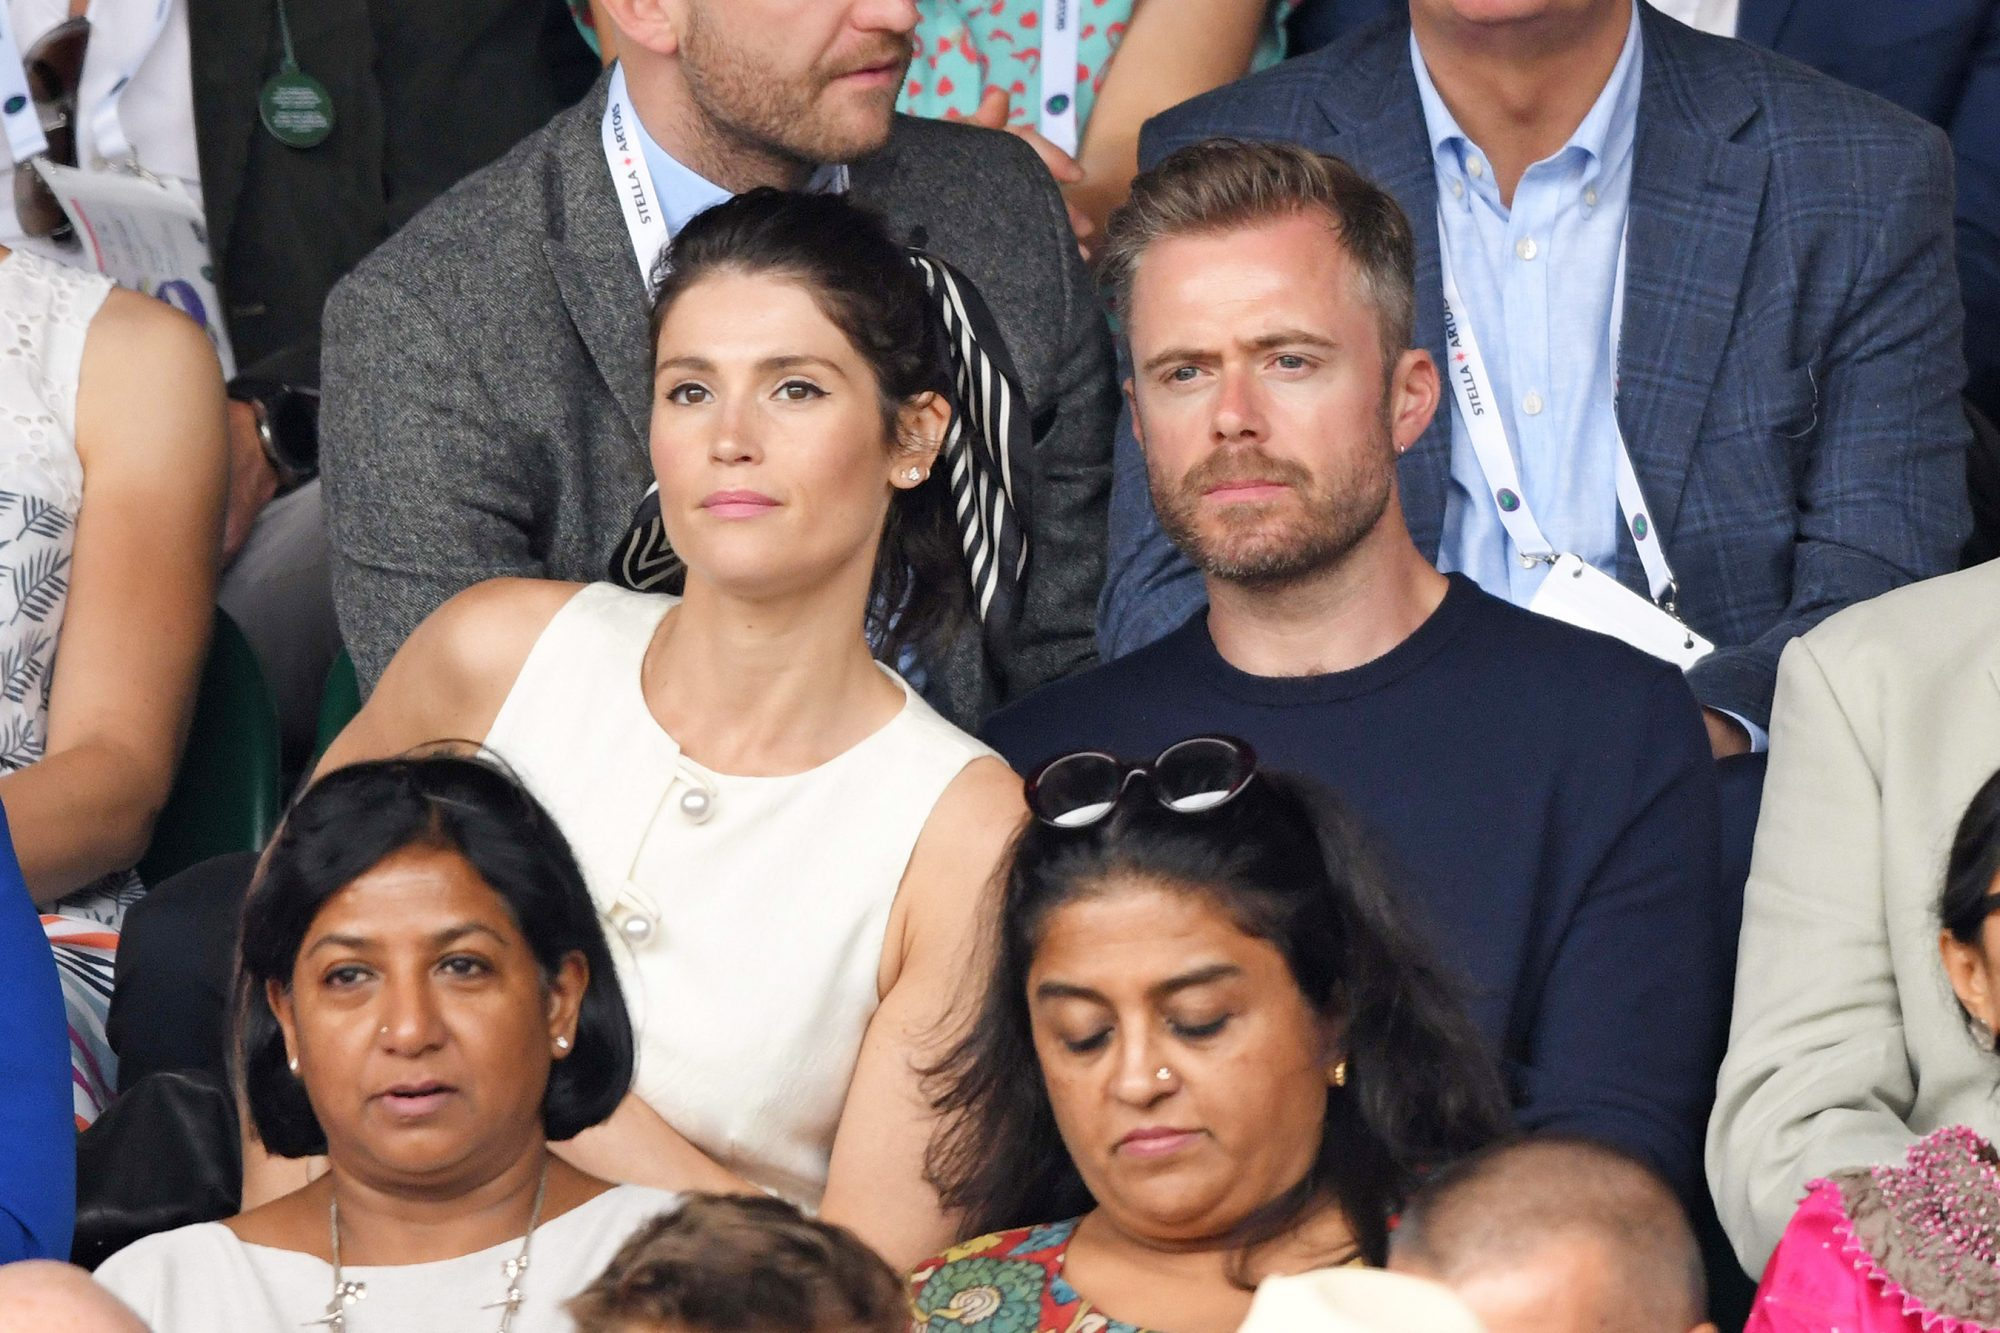 LONDON, ENGLAND - JULY 14: Gemma Arterton and Rory Keenan on Centre Court on Men's Finals Day of the Wimbledon Tennis Championships at All England Lawn Tennis and Croquet Club on July 14, 2019 in London, England. (Photo by Karwai Tang/Getty Images)